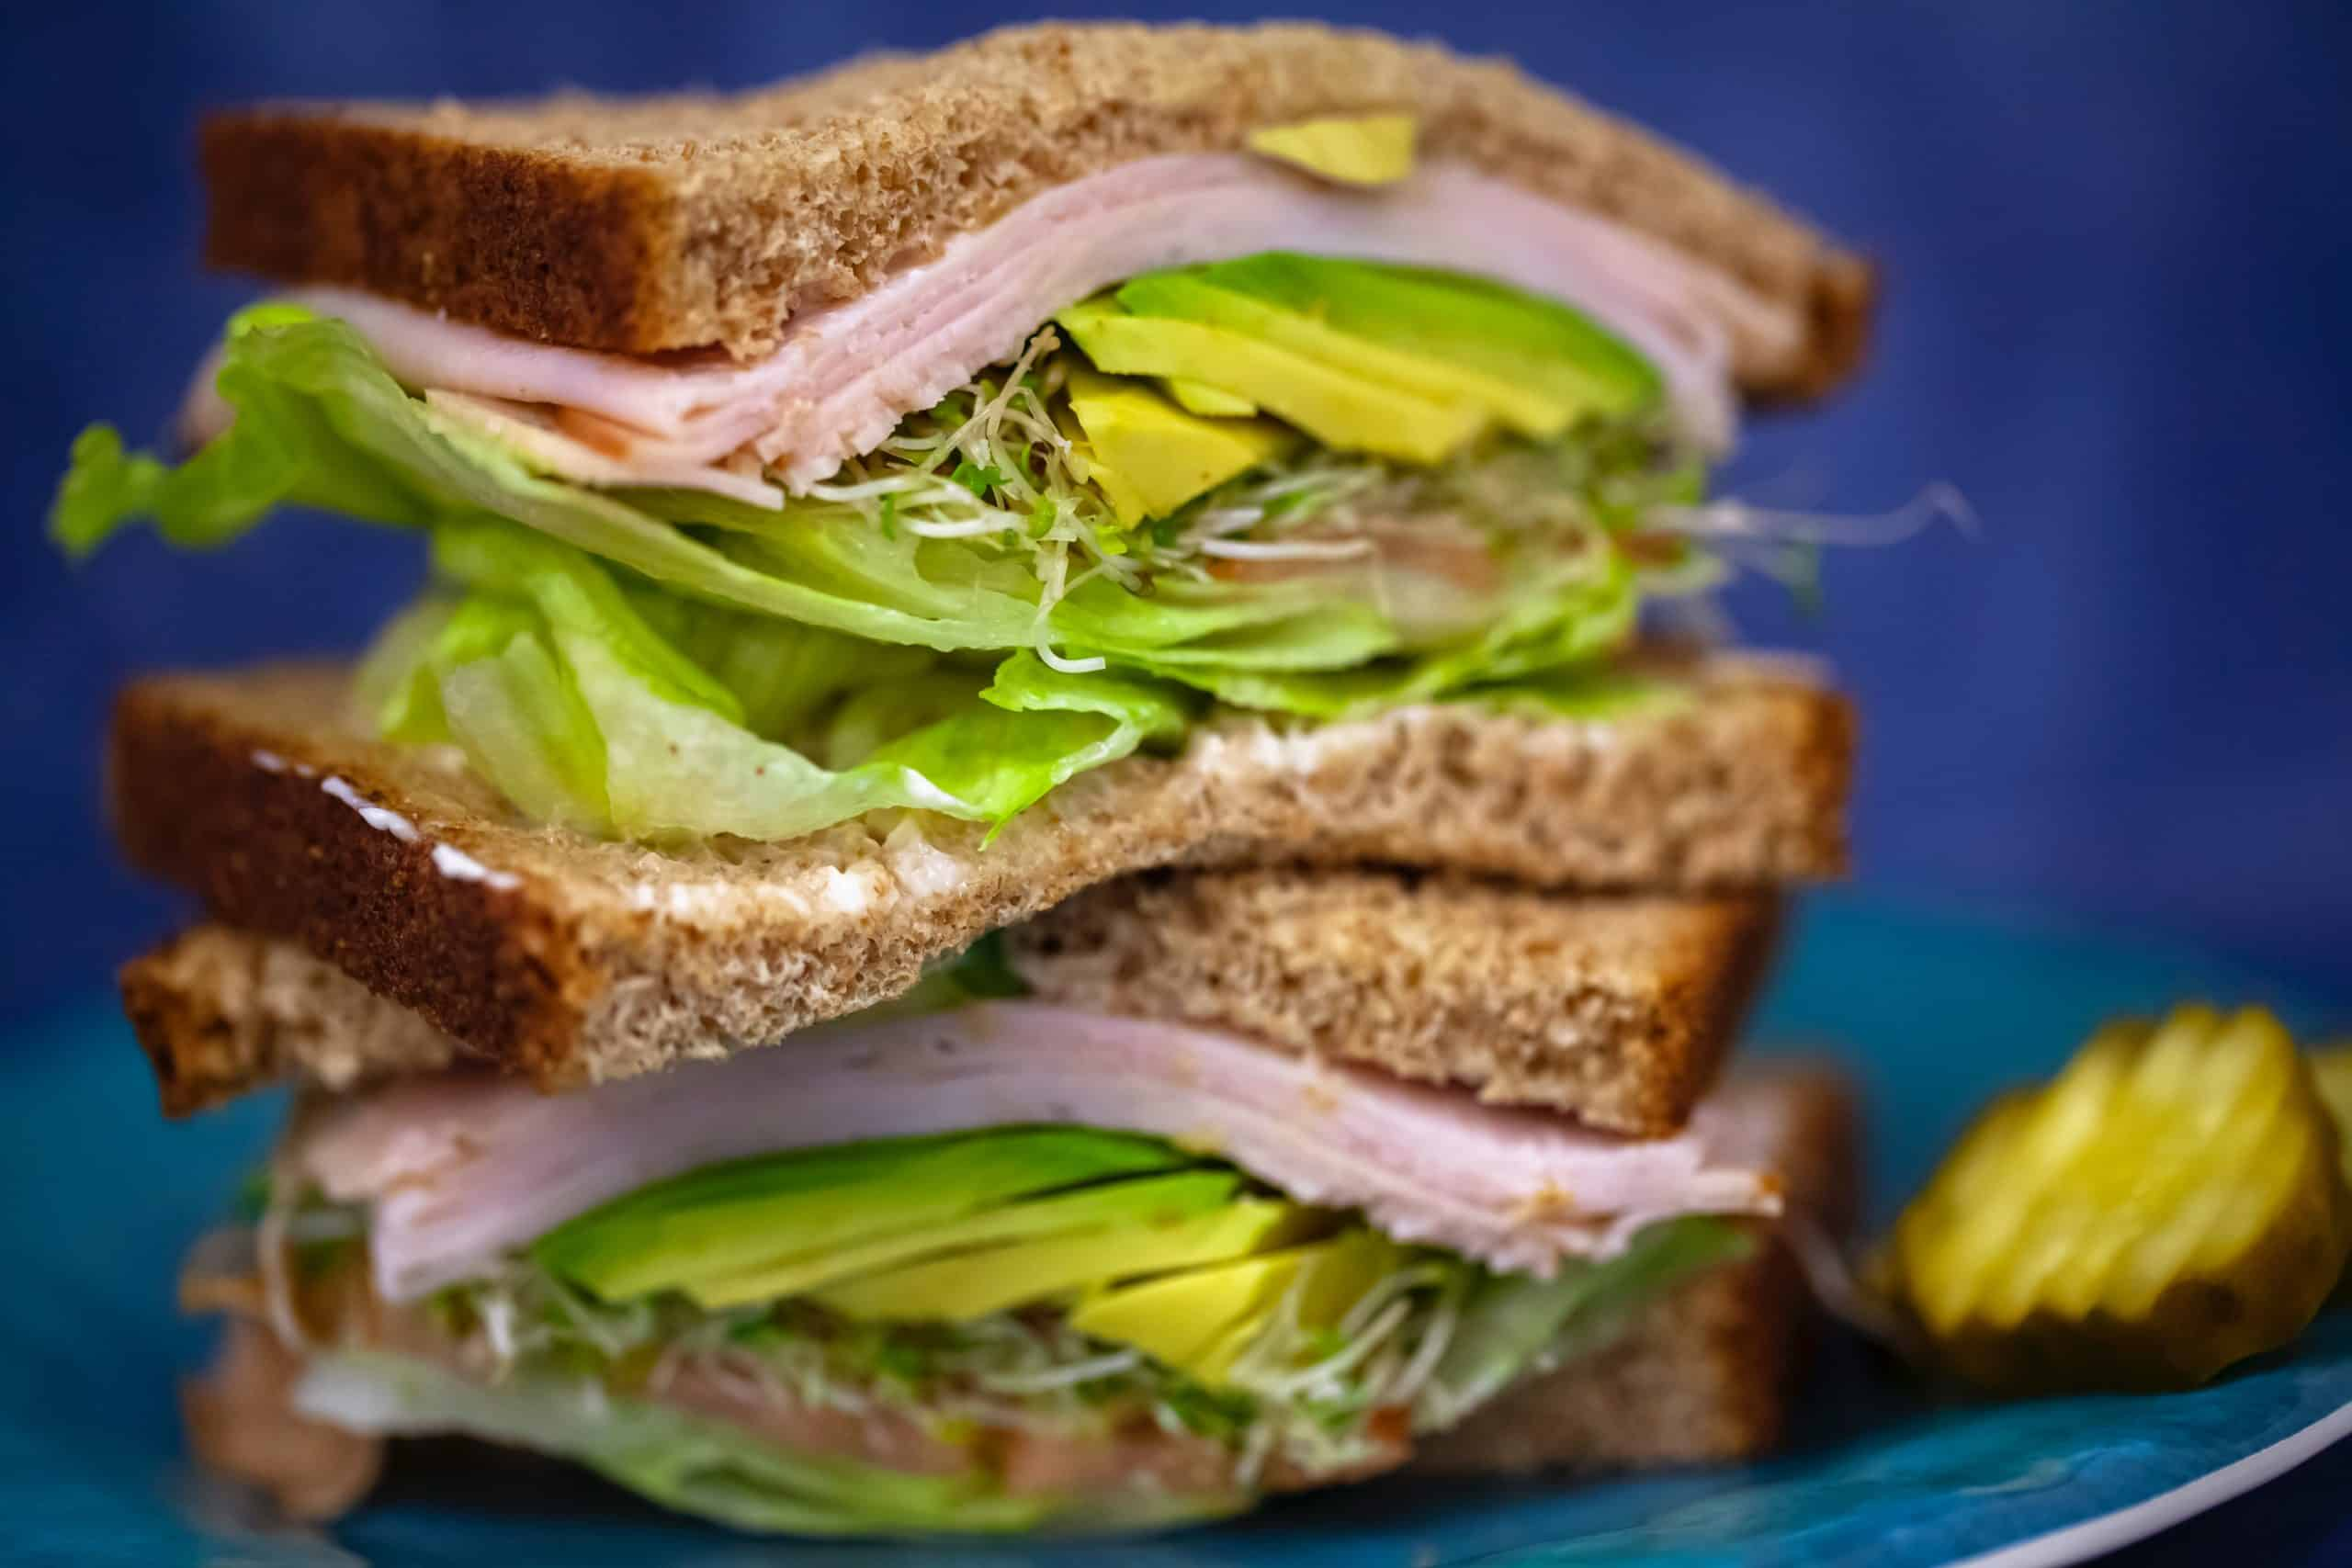 Gluten-Free Sandwich - How To Make Them Delicious And Tasty